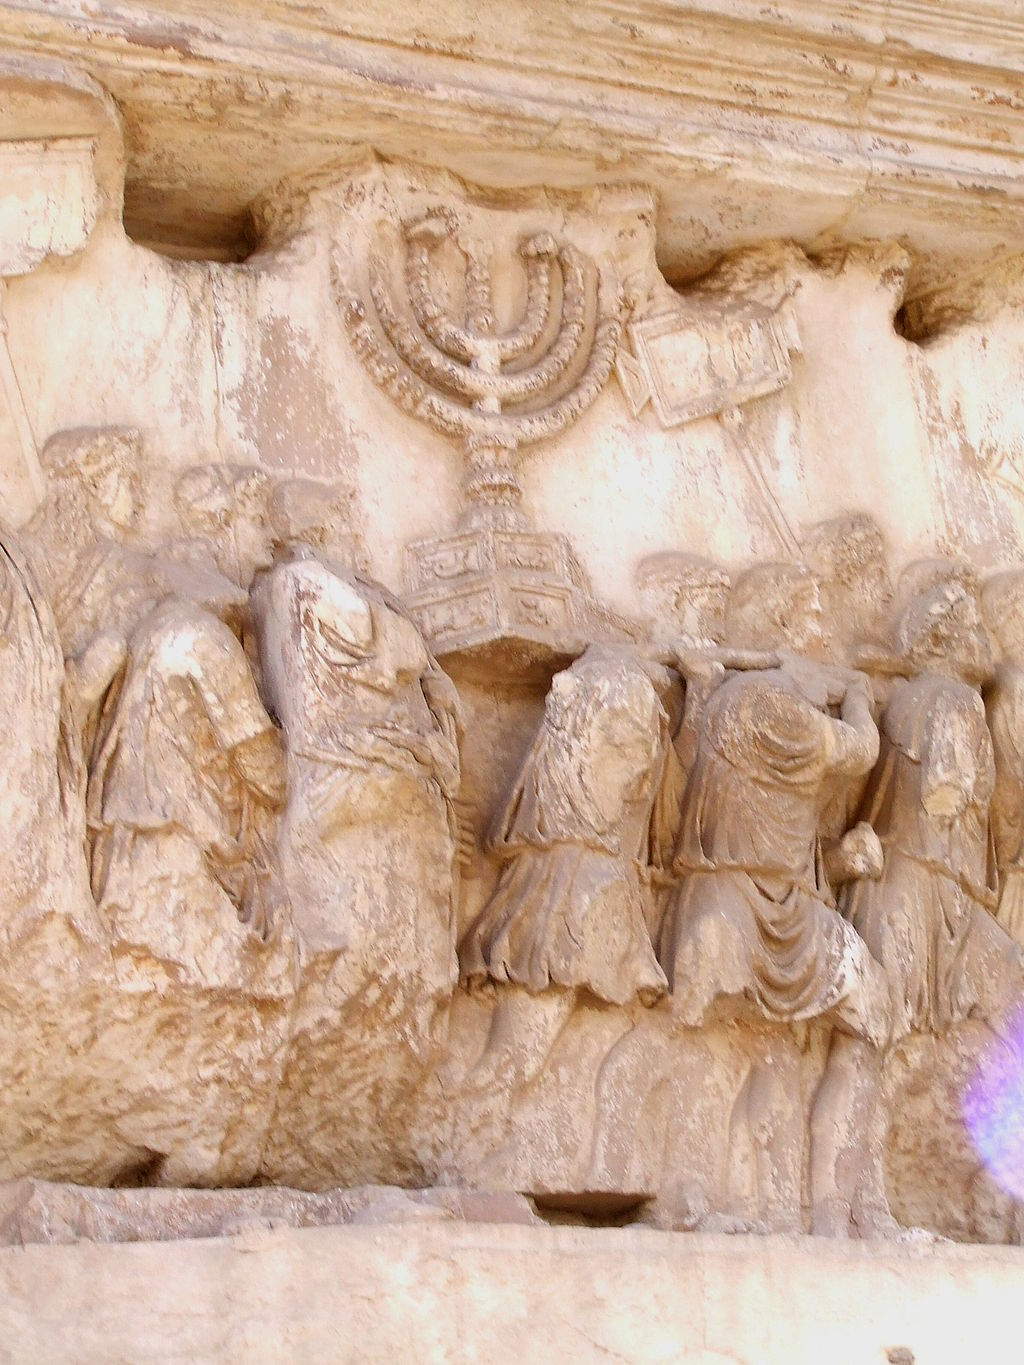 1024px Carrying_off_the_Menorah_from_the_Temple_in_Jerusalem_depicted_on_a_frieze_on_the_Arch_of_Titus_in_the_Forum_Romanum